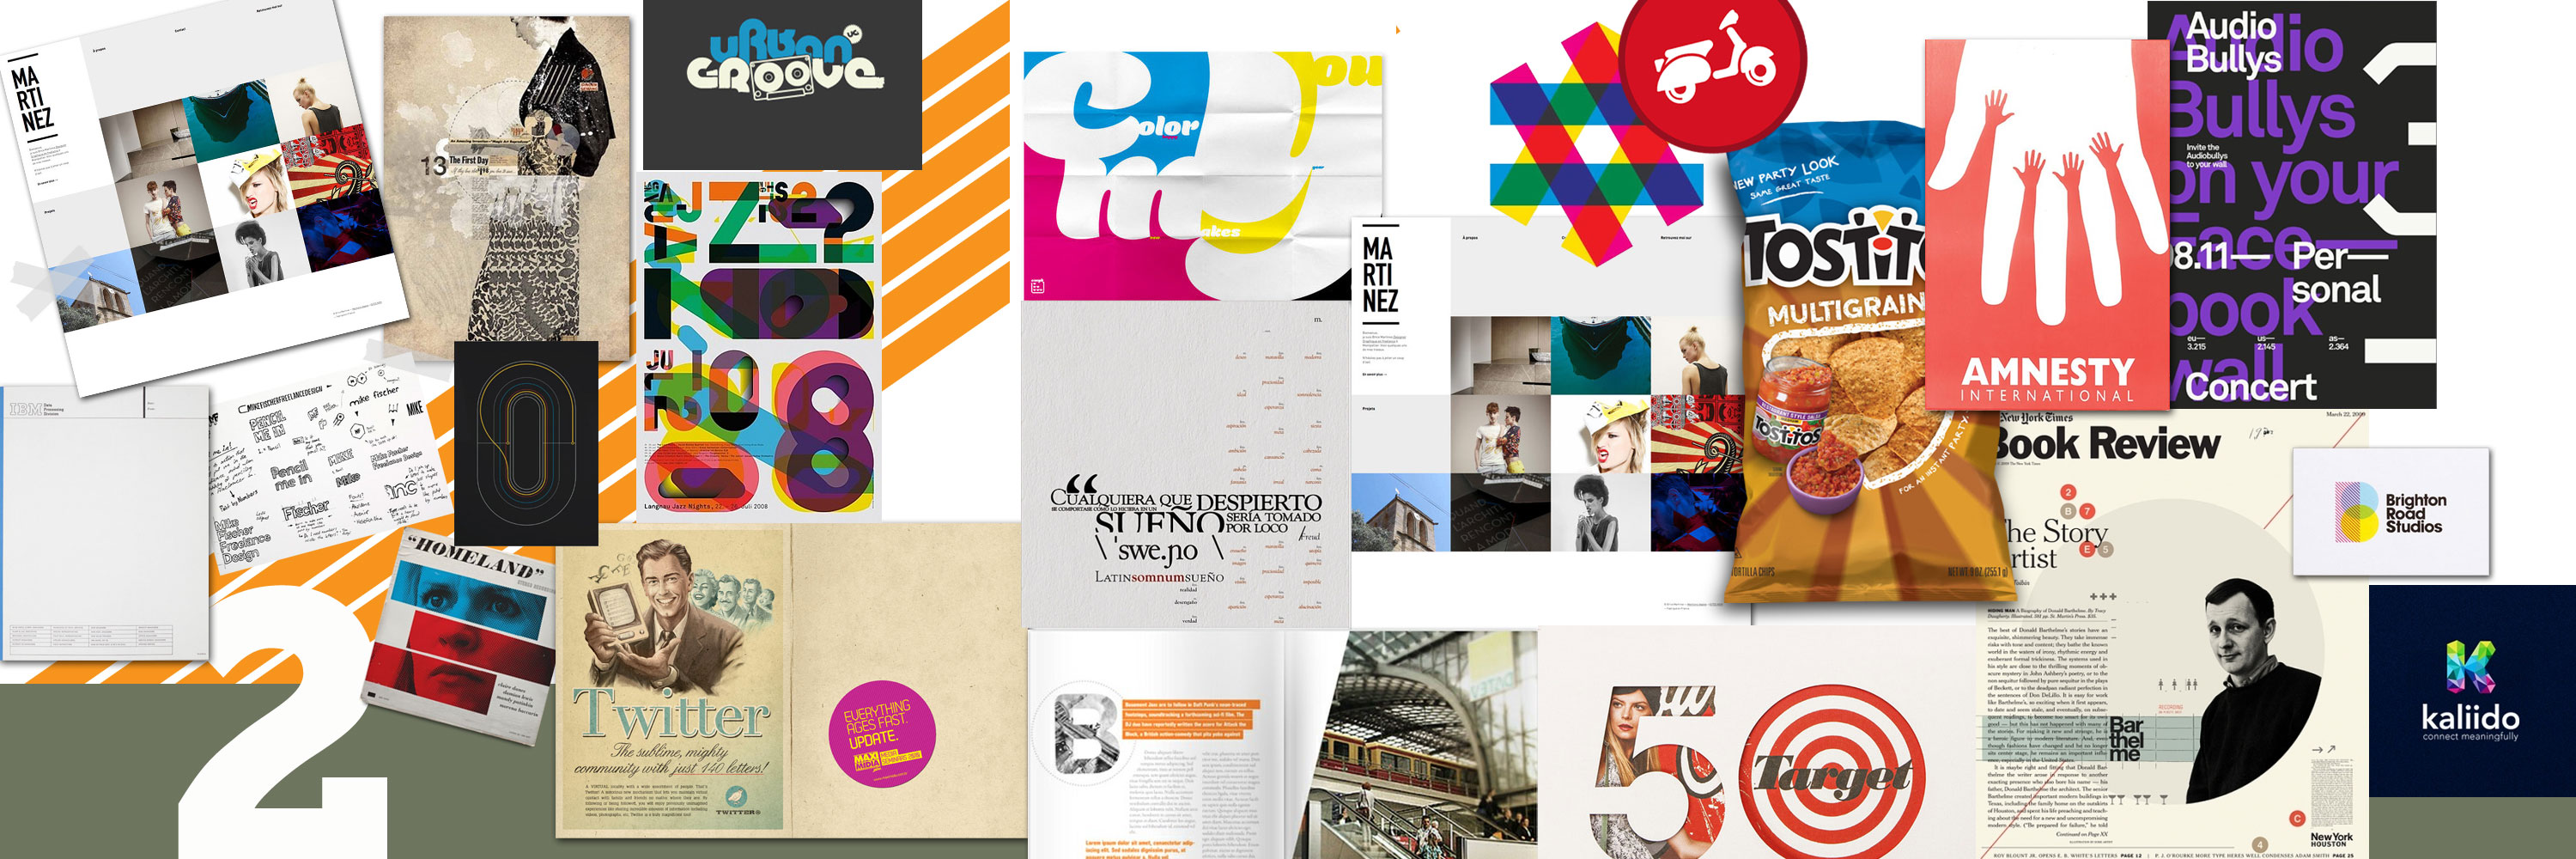 Square Design (Mood Boards)  - image 2 - student project